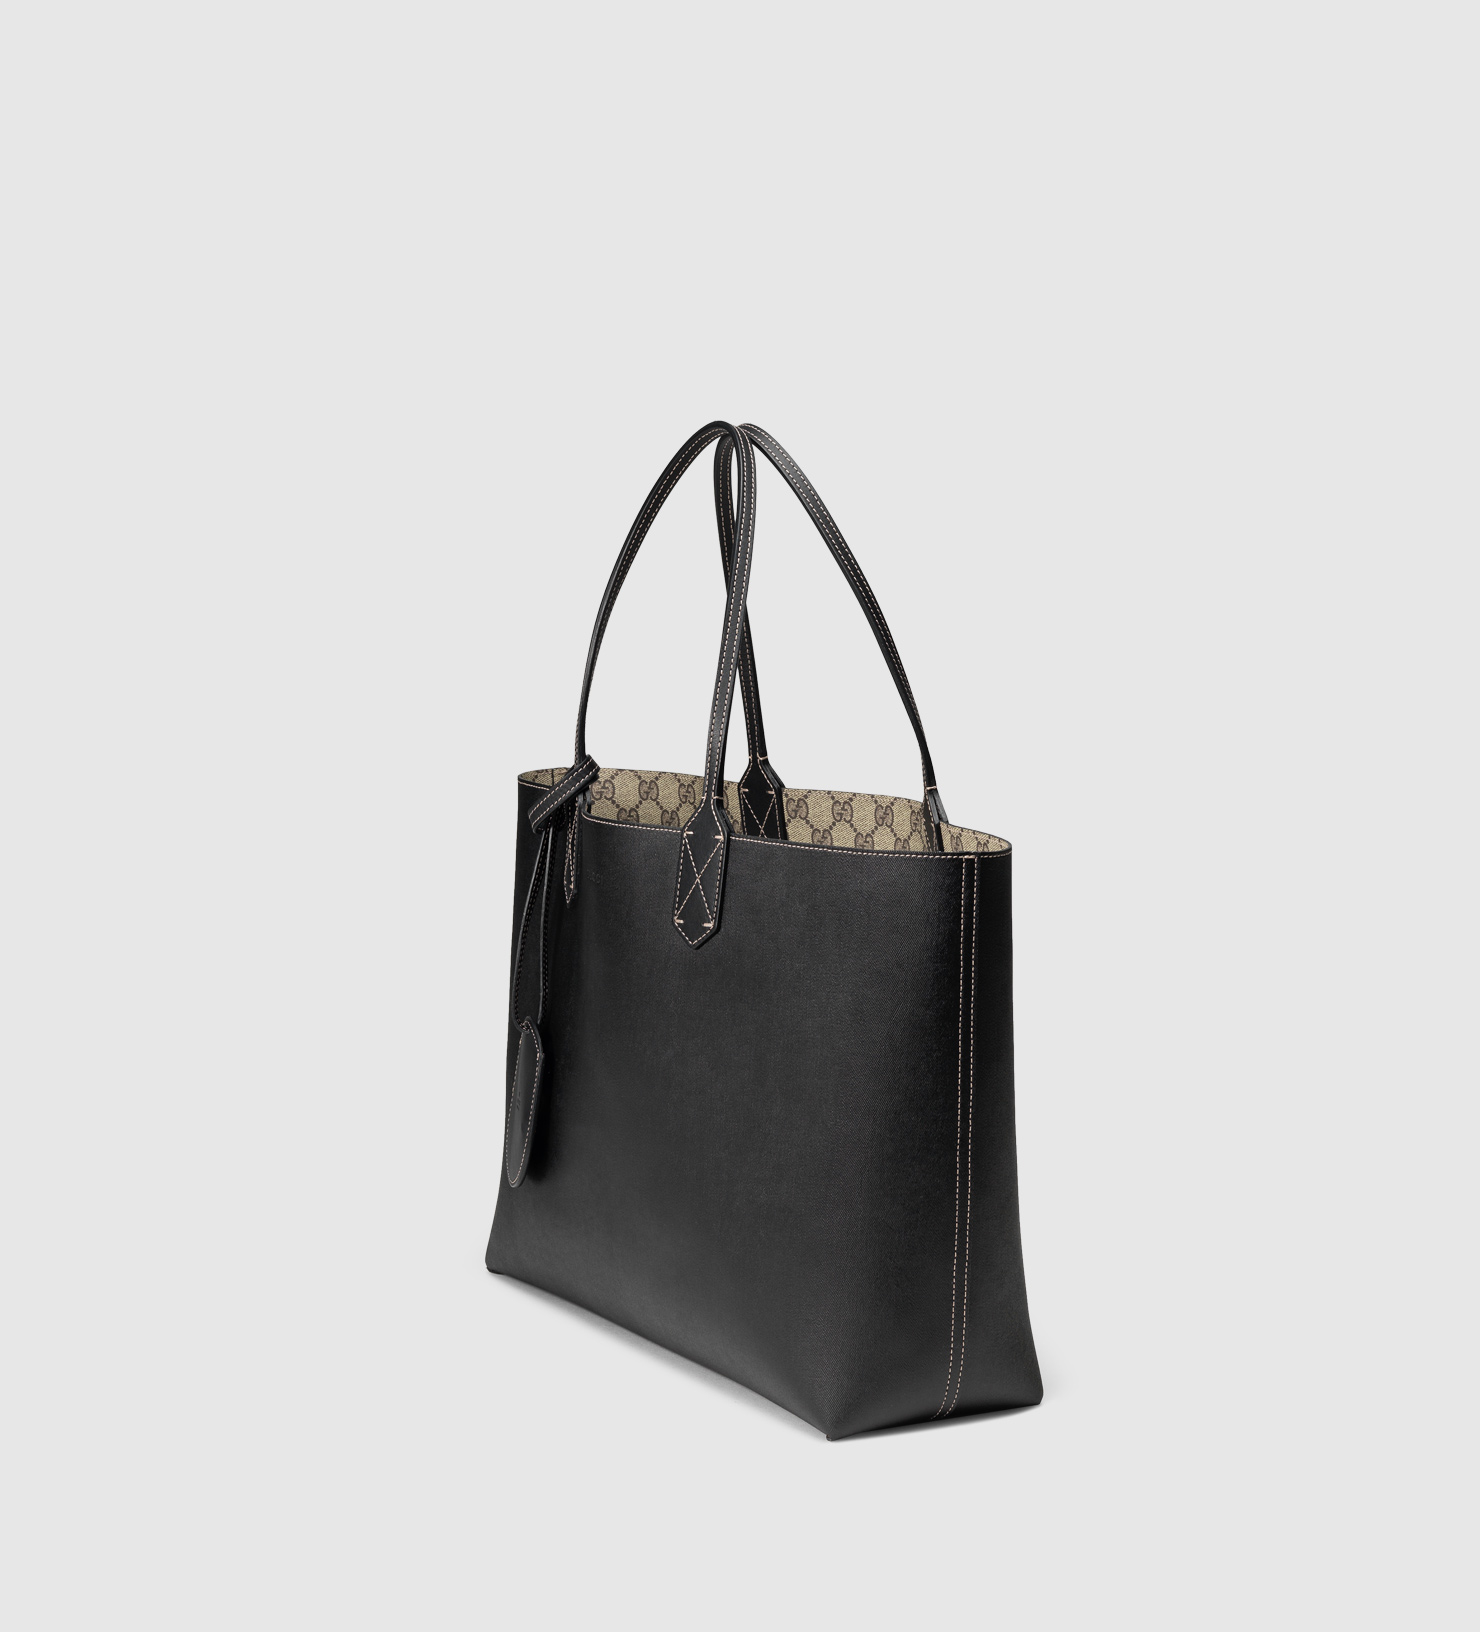 f55c4285fc37d9 Gucci Black Reversible Tote | Stanford Center for Opportunity Policy ...